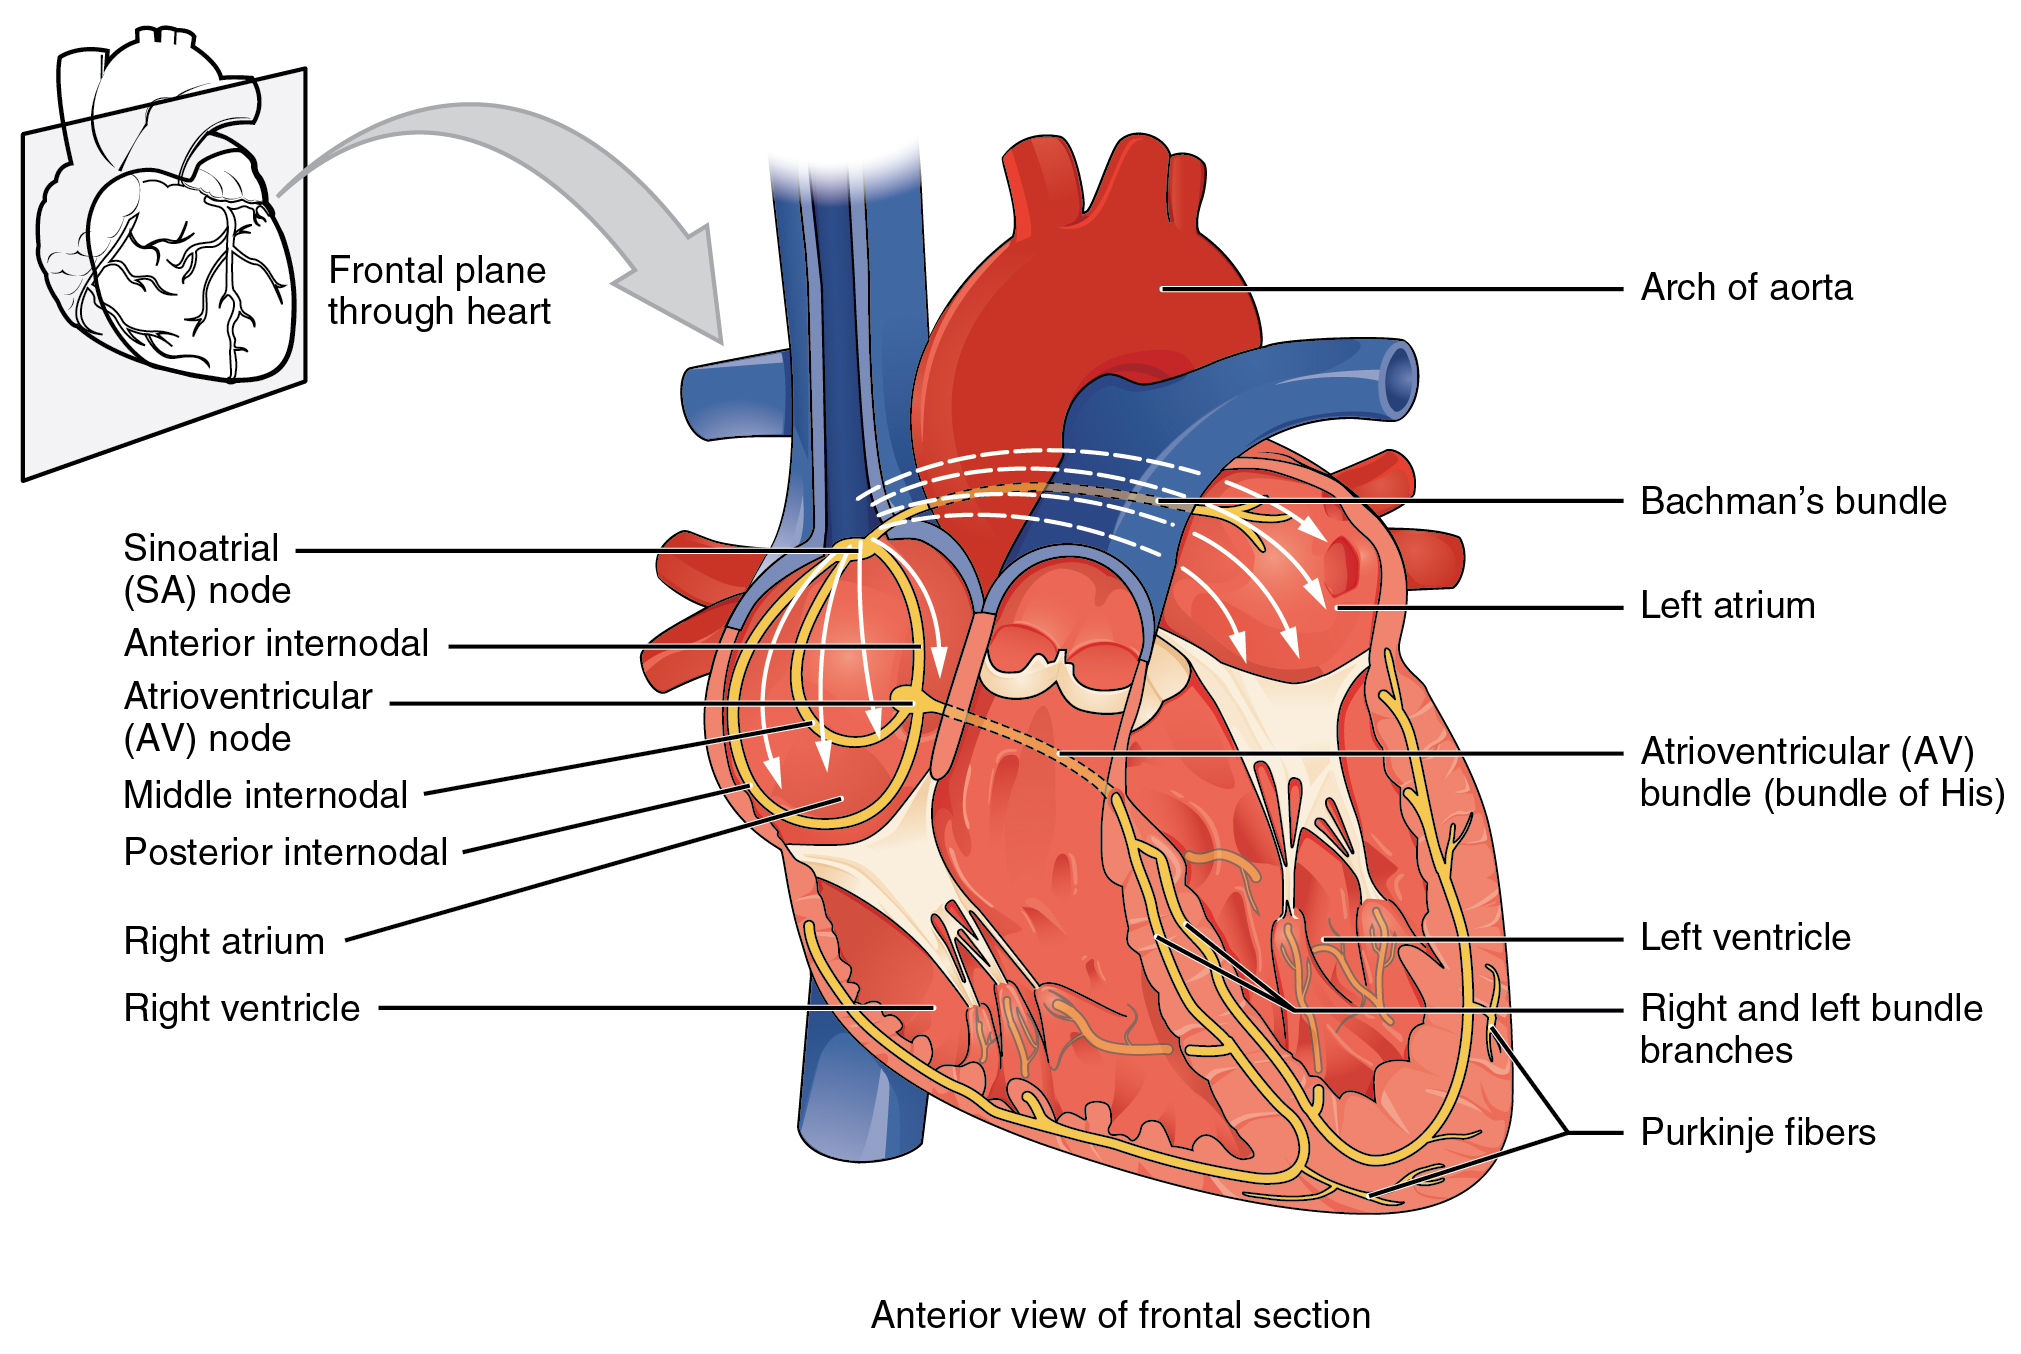 19.2 Cardiac Muscle and Electrical Activity – Anatomy and Physiology